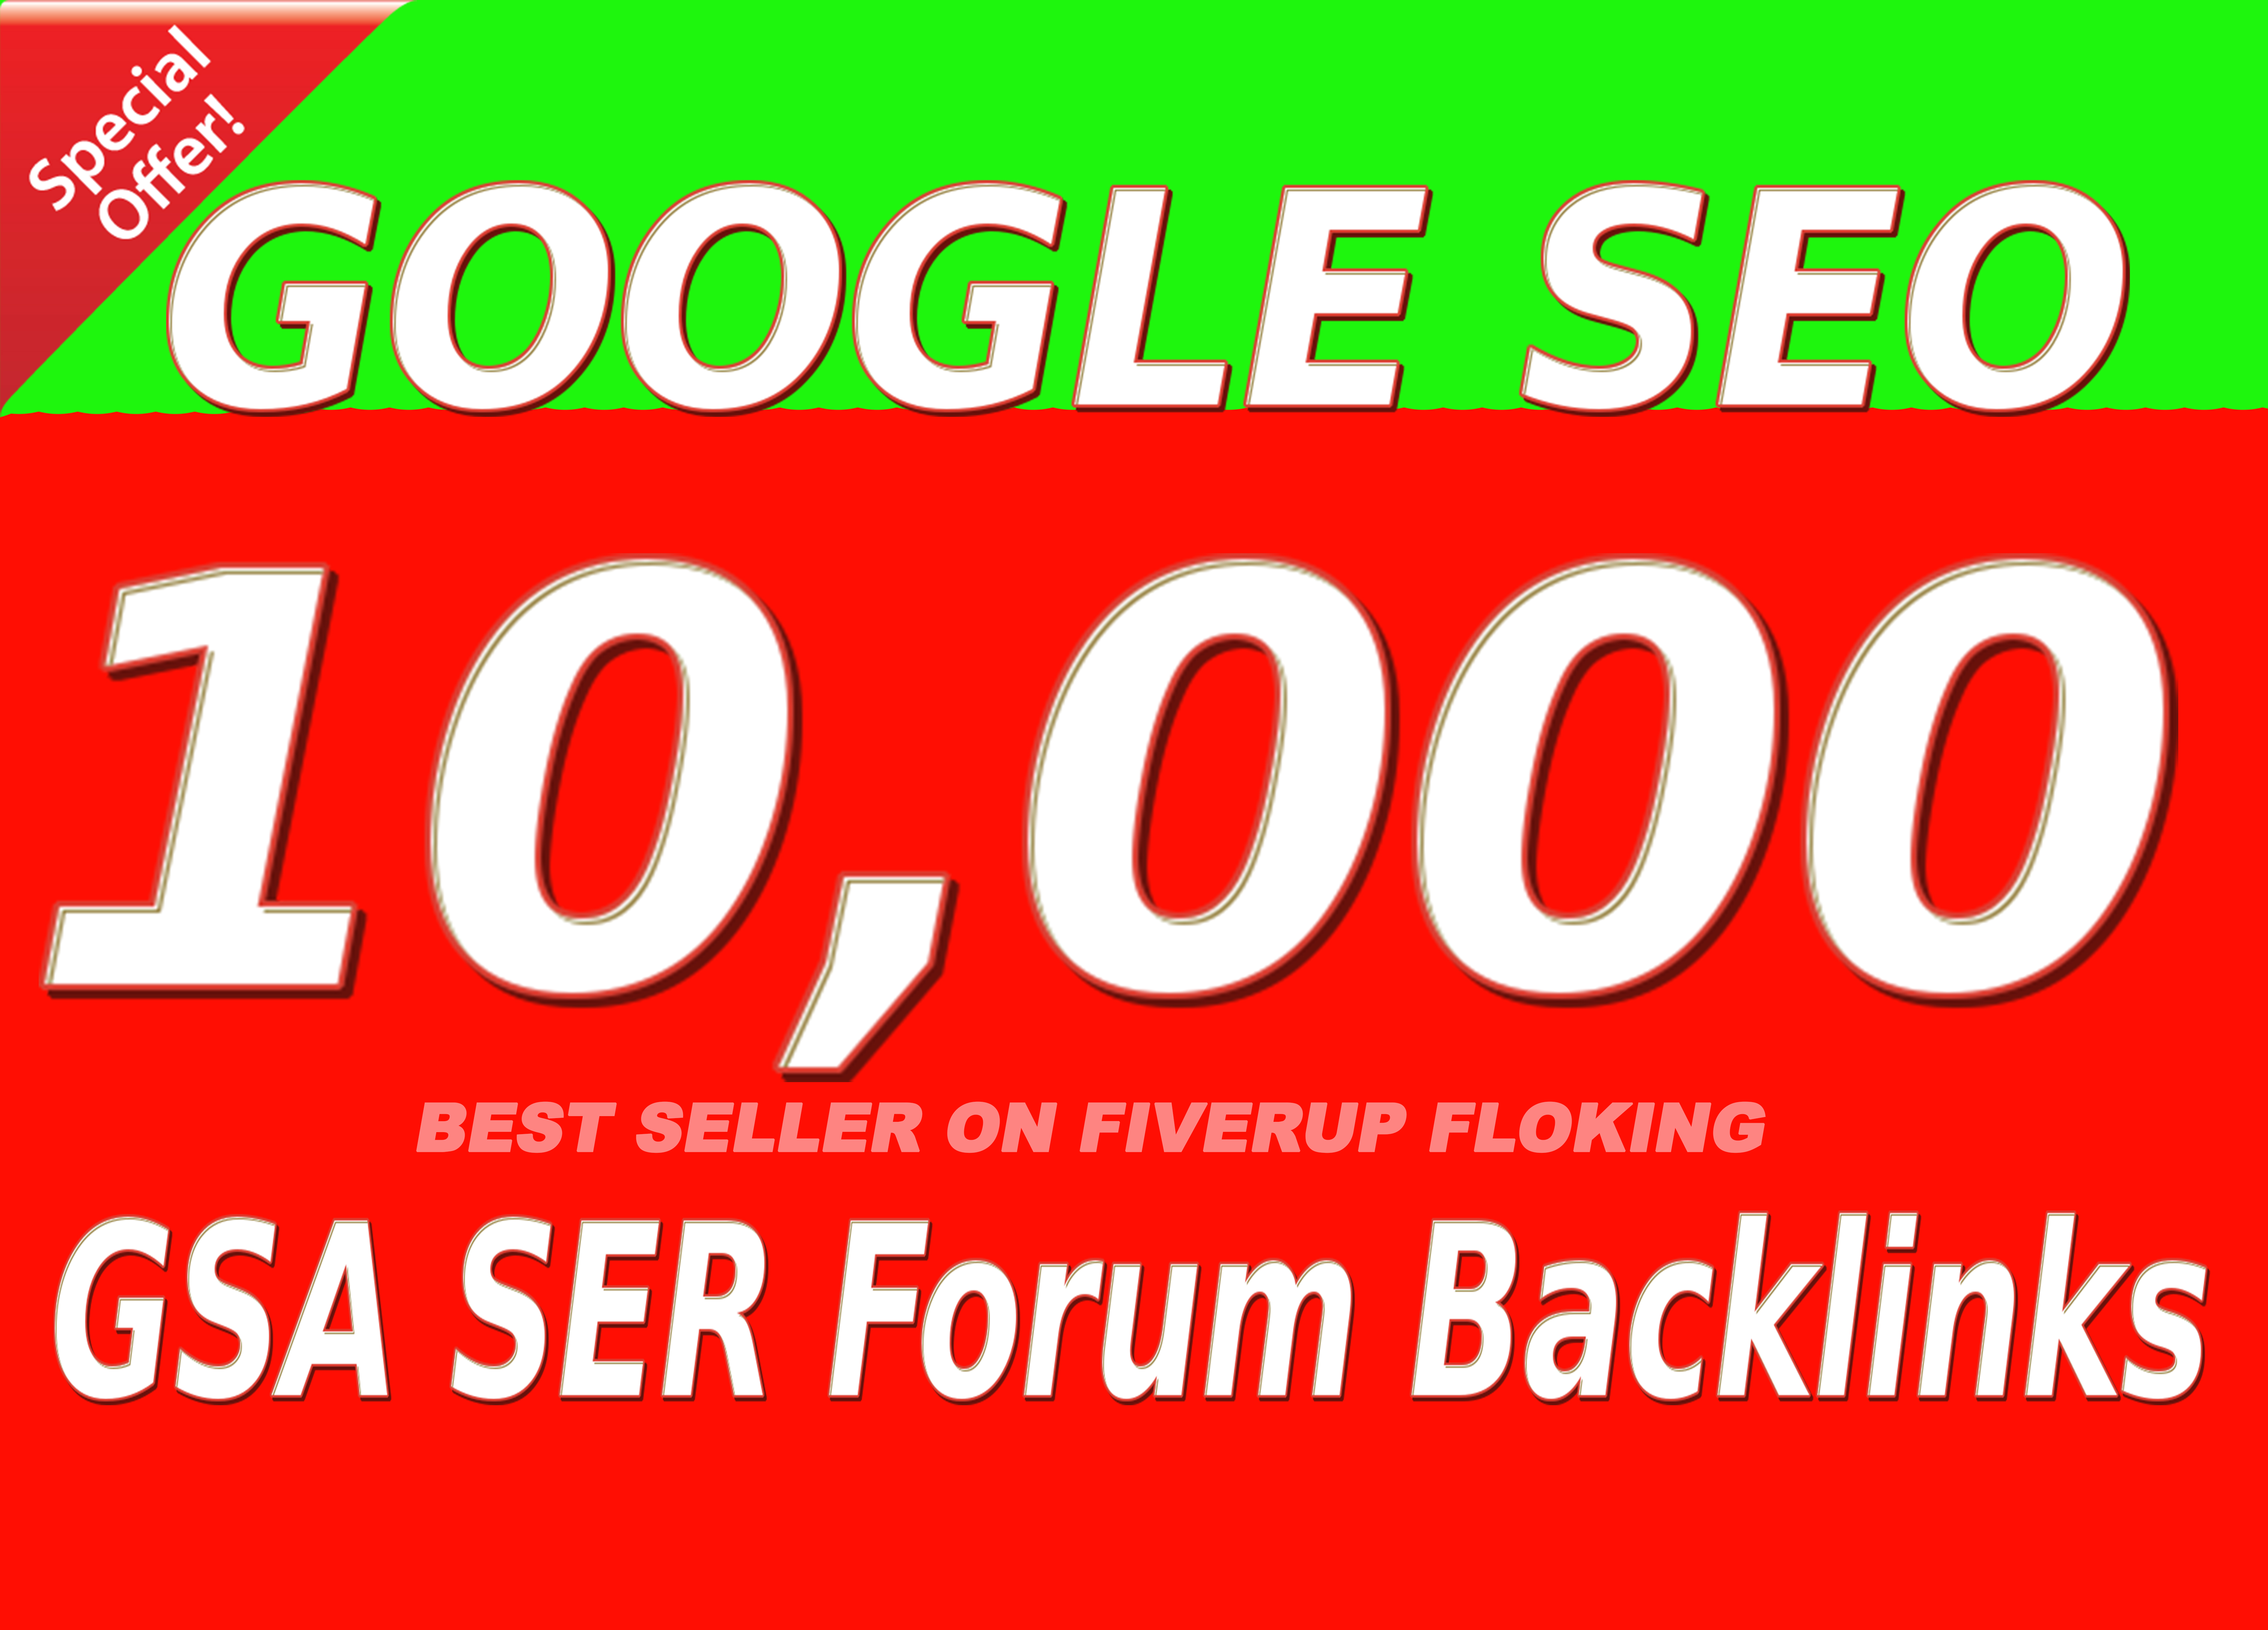 10,000 GSA SER Forum Backlinks for Google SEO